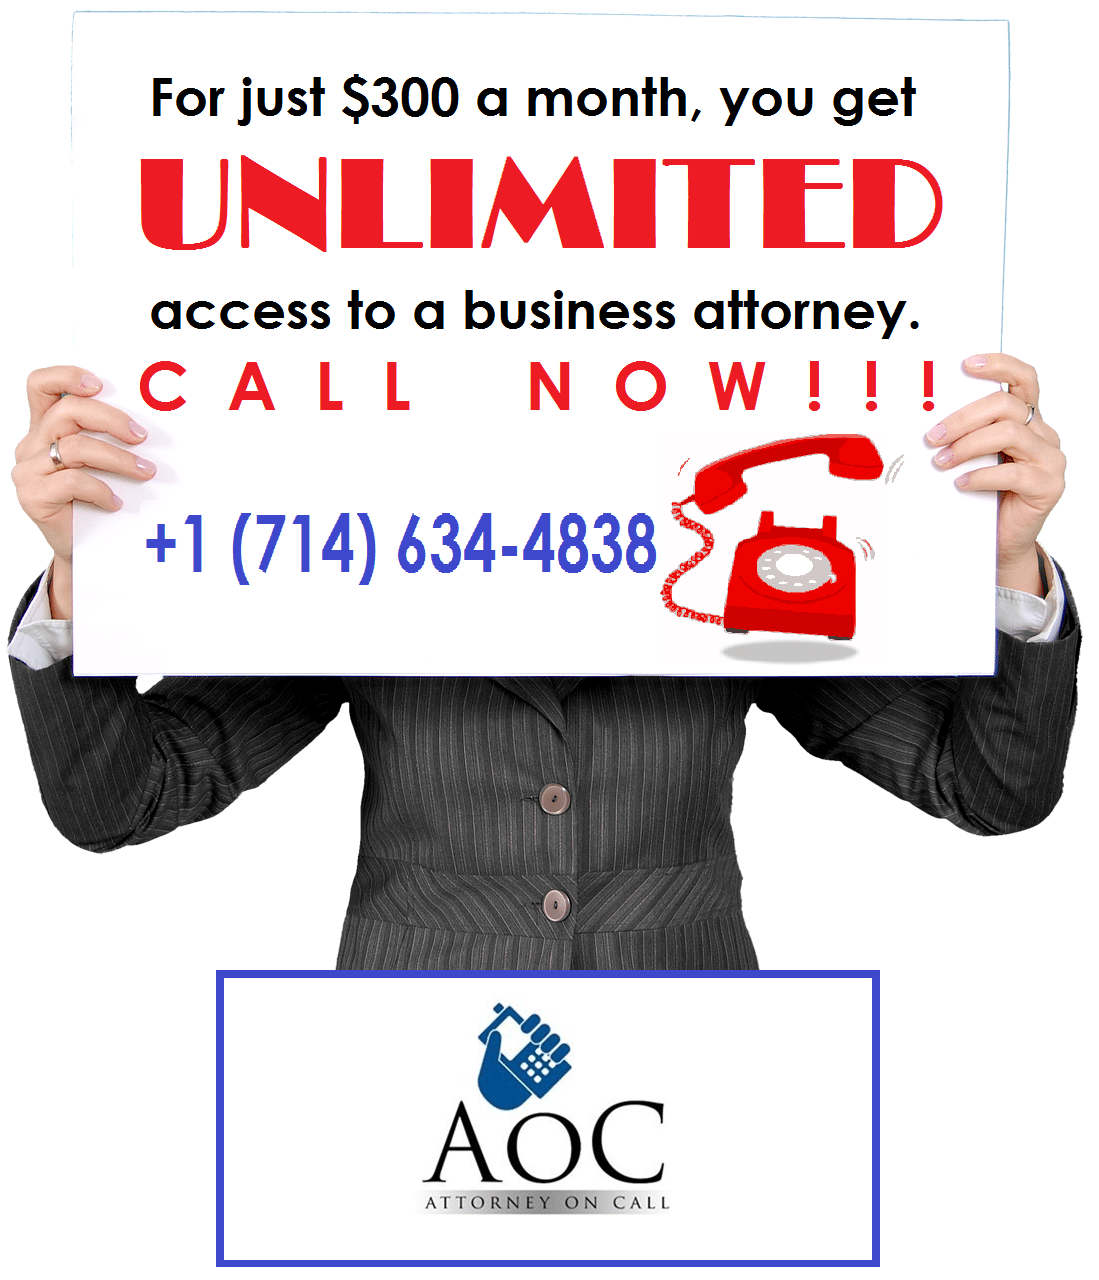 Click to Subscribe to our Attorney on Call Program today!